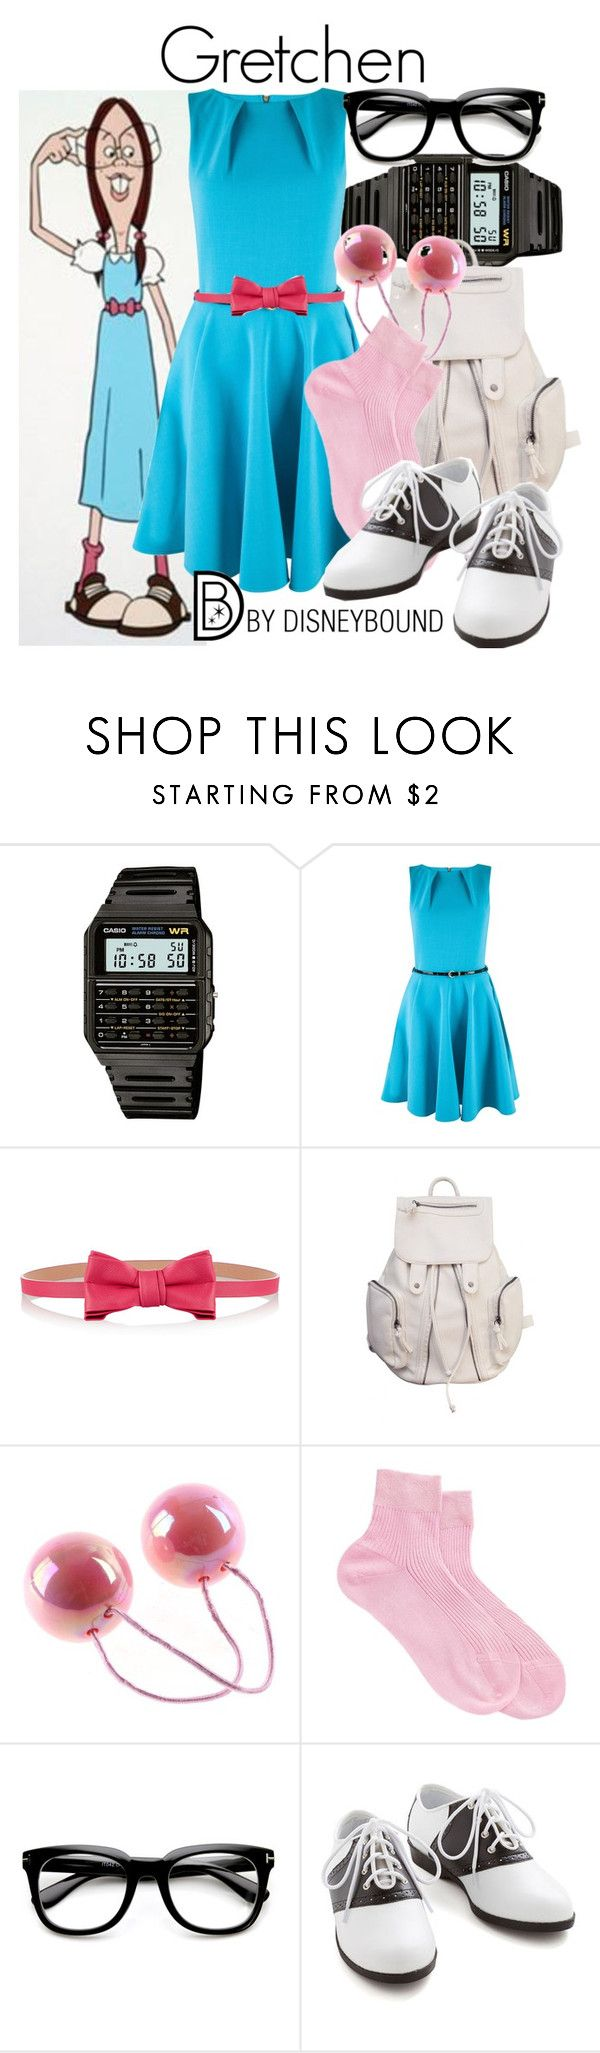 """Gretchen"" by leslieakay ❤ liked on Polyvore featuring GRETCHEN, Casio, Closet, RED Valentino, Maria La Rosa, disney, disneybound and disneycharacter"